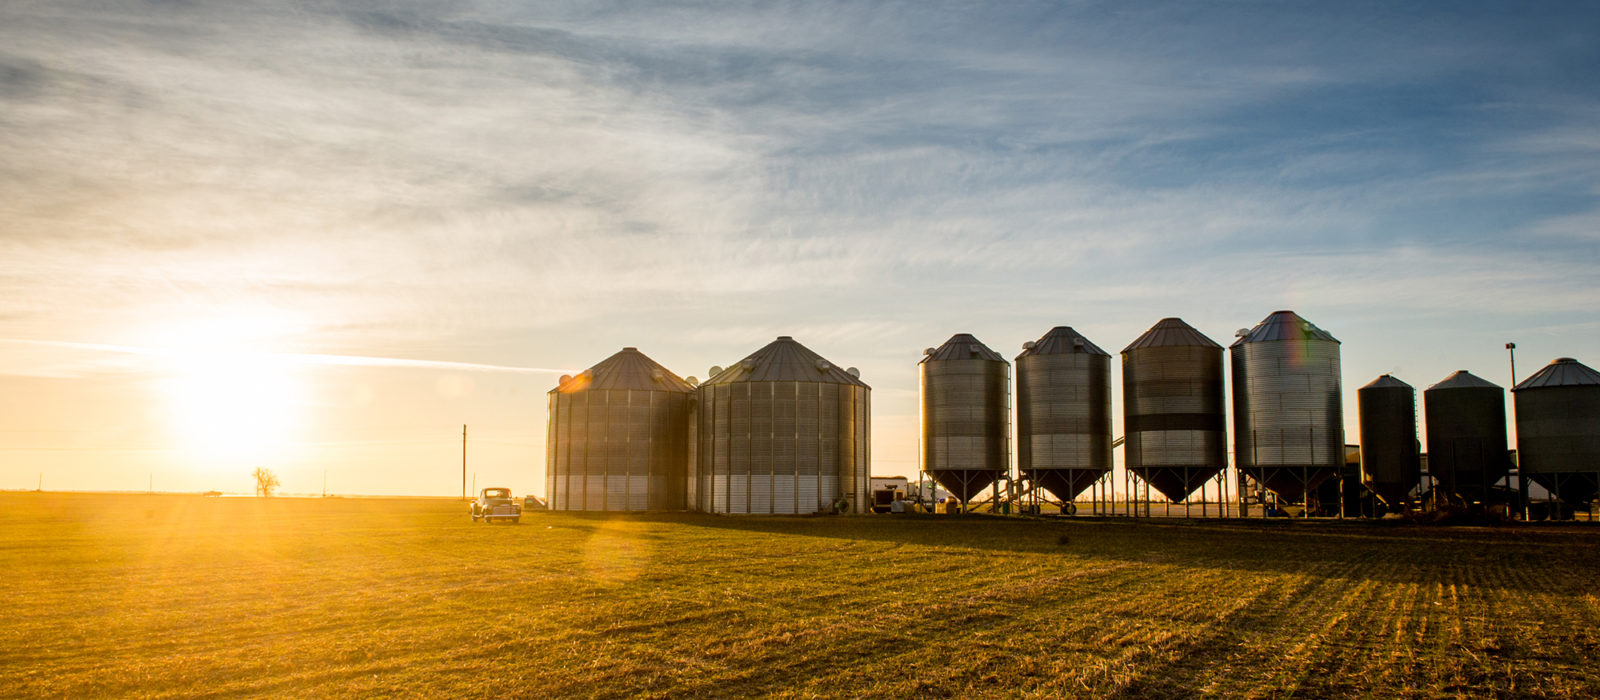 American AgCredit truck from a distance in front of silos at sunset